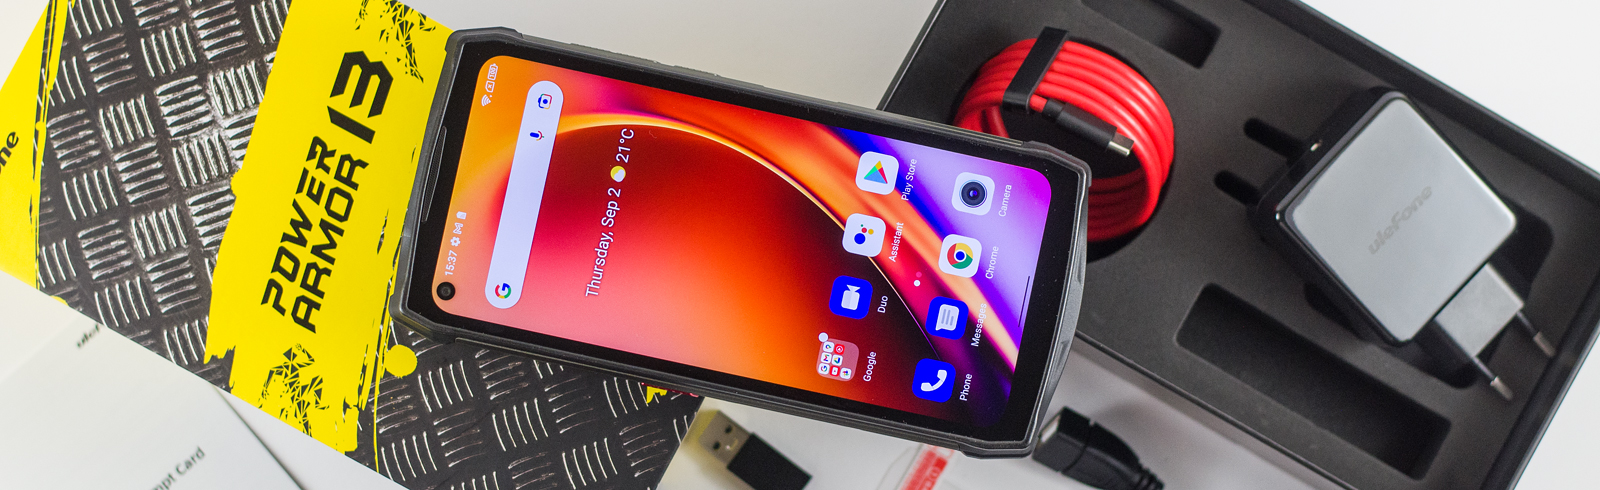 Our in-depth Ulefone Power Armor 13 review is ready